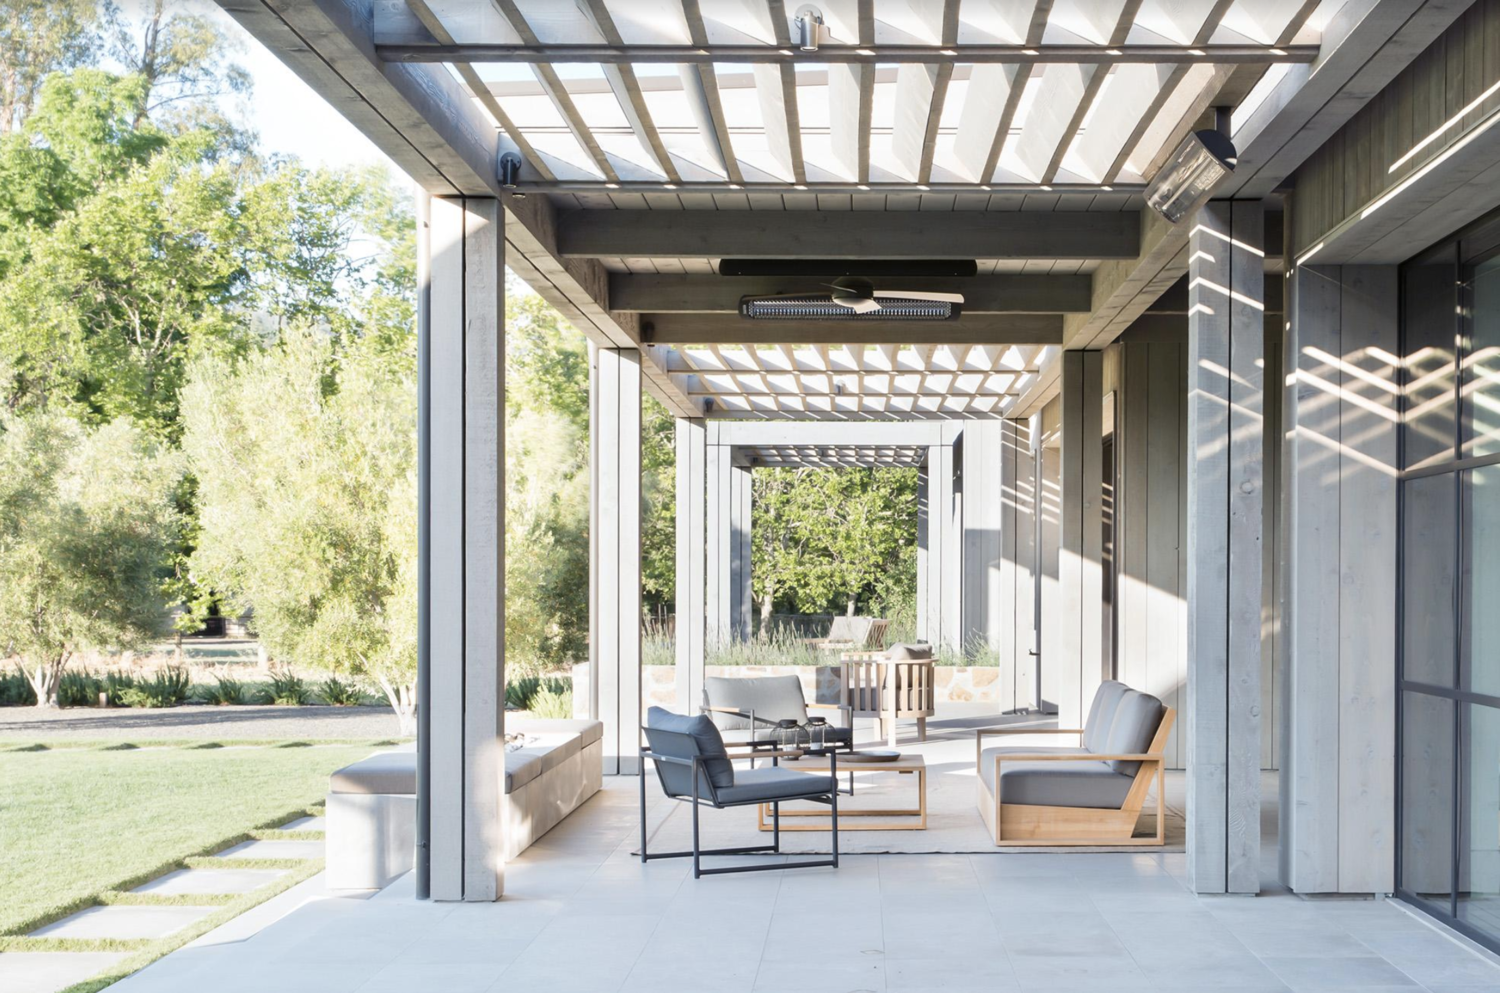 Simple and serene | A shaded patio provides a comfortable place to relax on even the sunniest days.